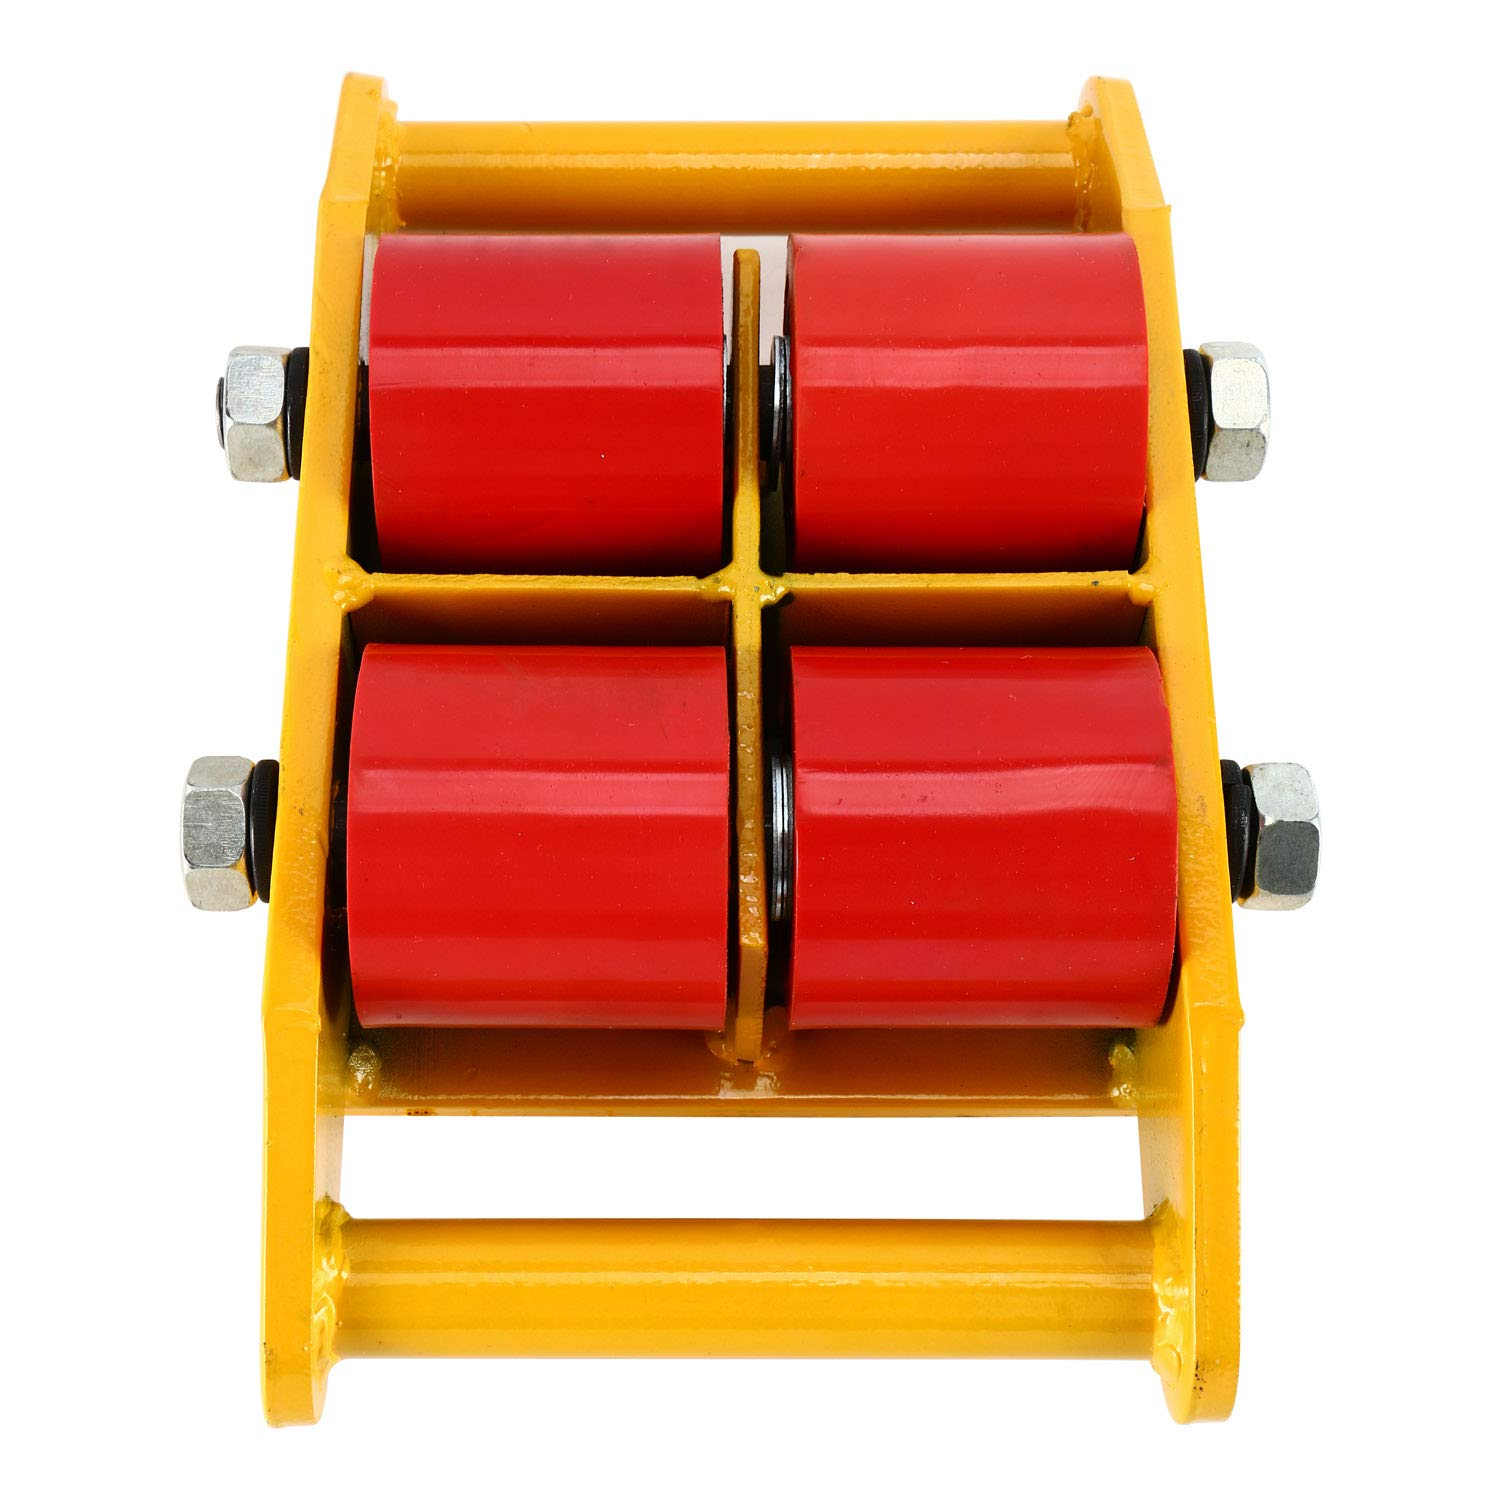 YaeTek Industrial Machinery Mover 13200 lbs 6 Tons Machinery Skate Dolly with 4 Rollers Cap 360 Degree Rotation (Yellow) by YAE TEK (Image #8)